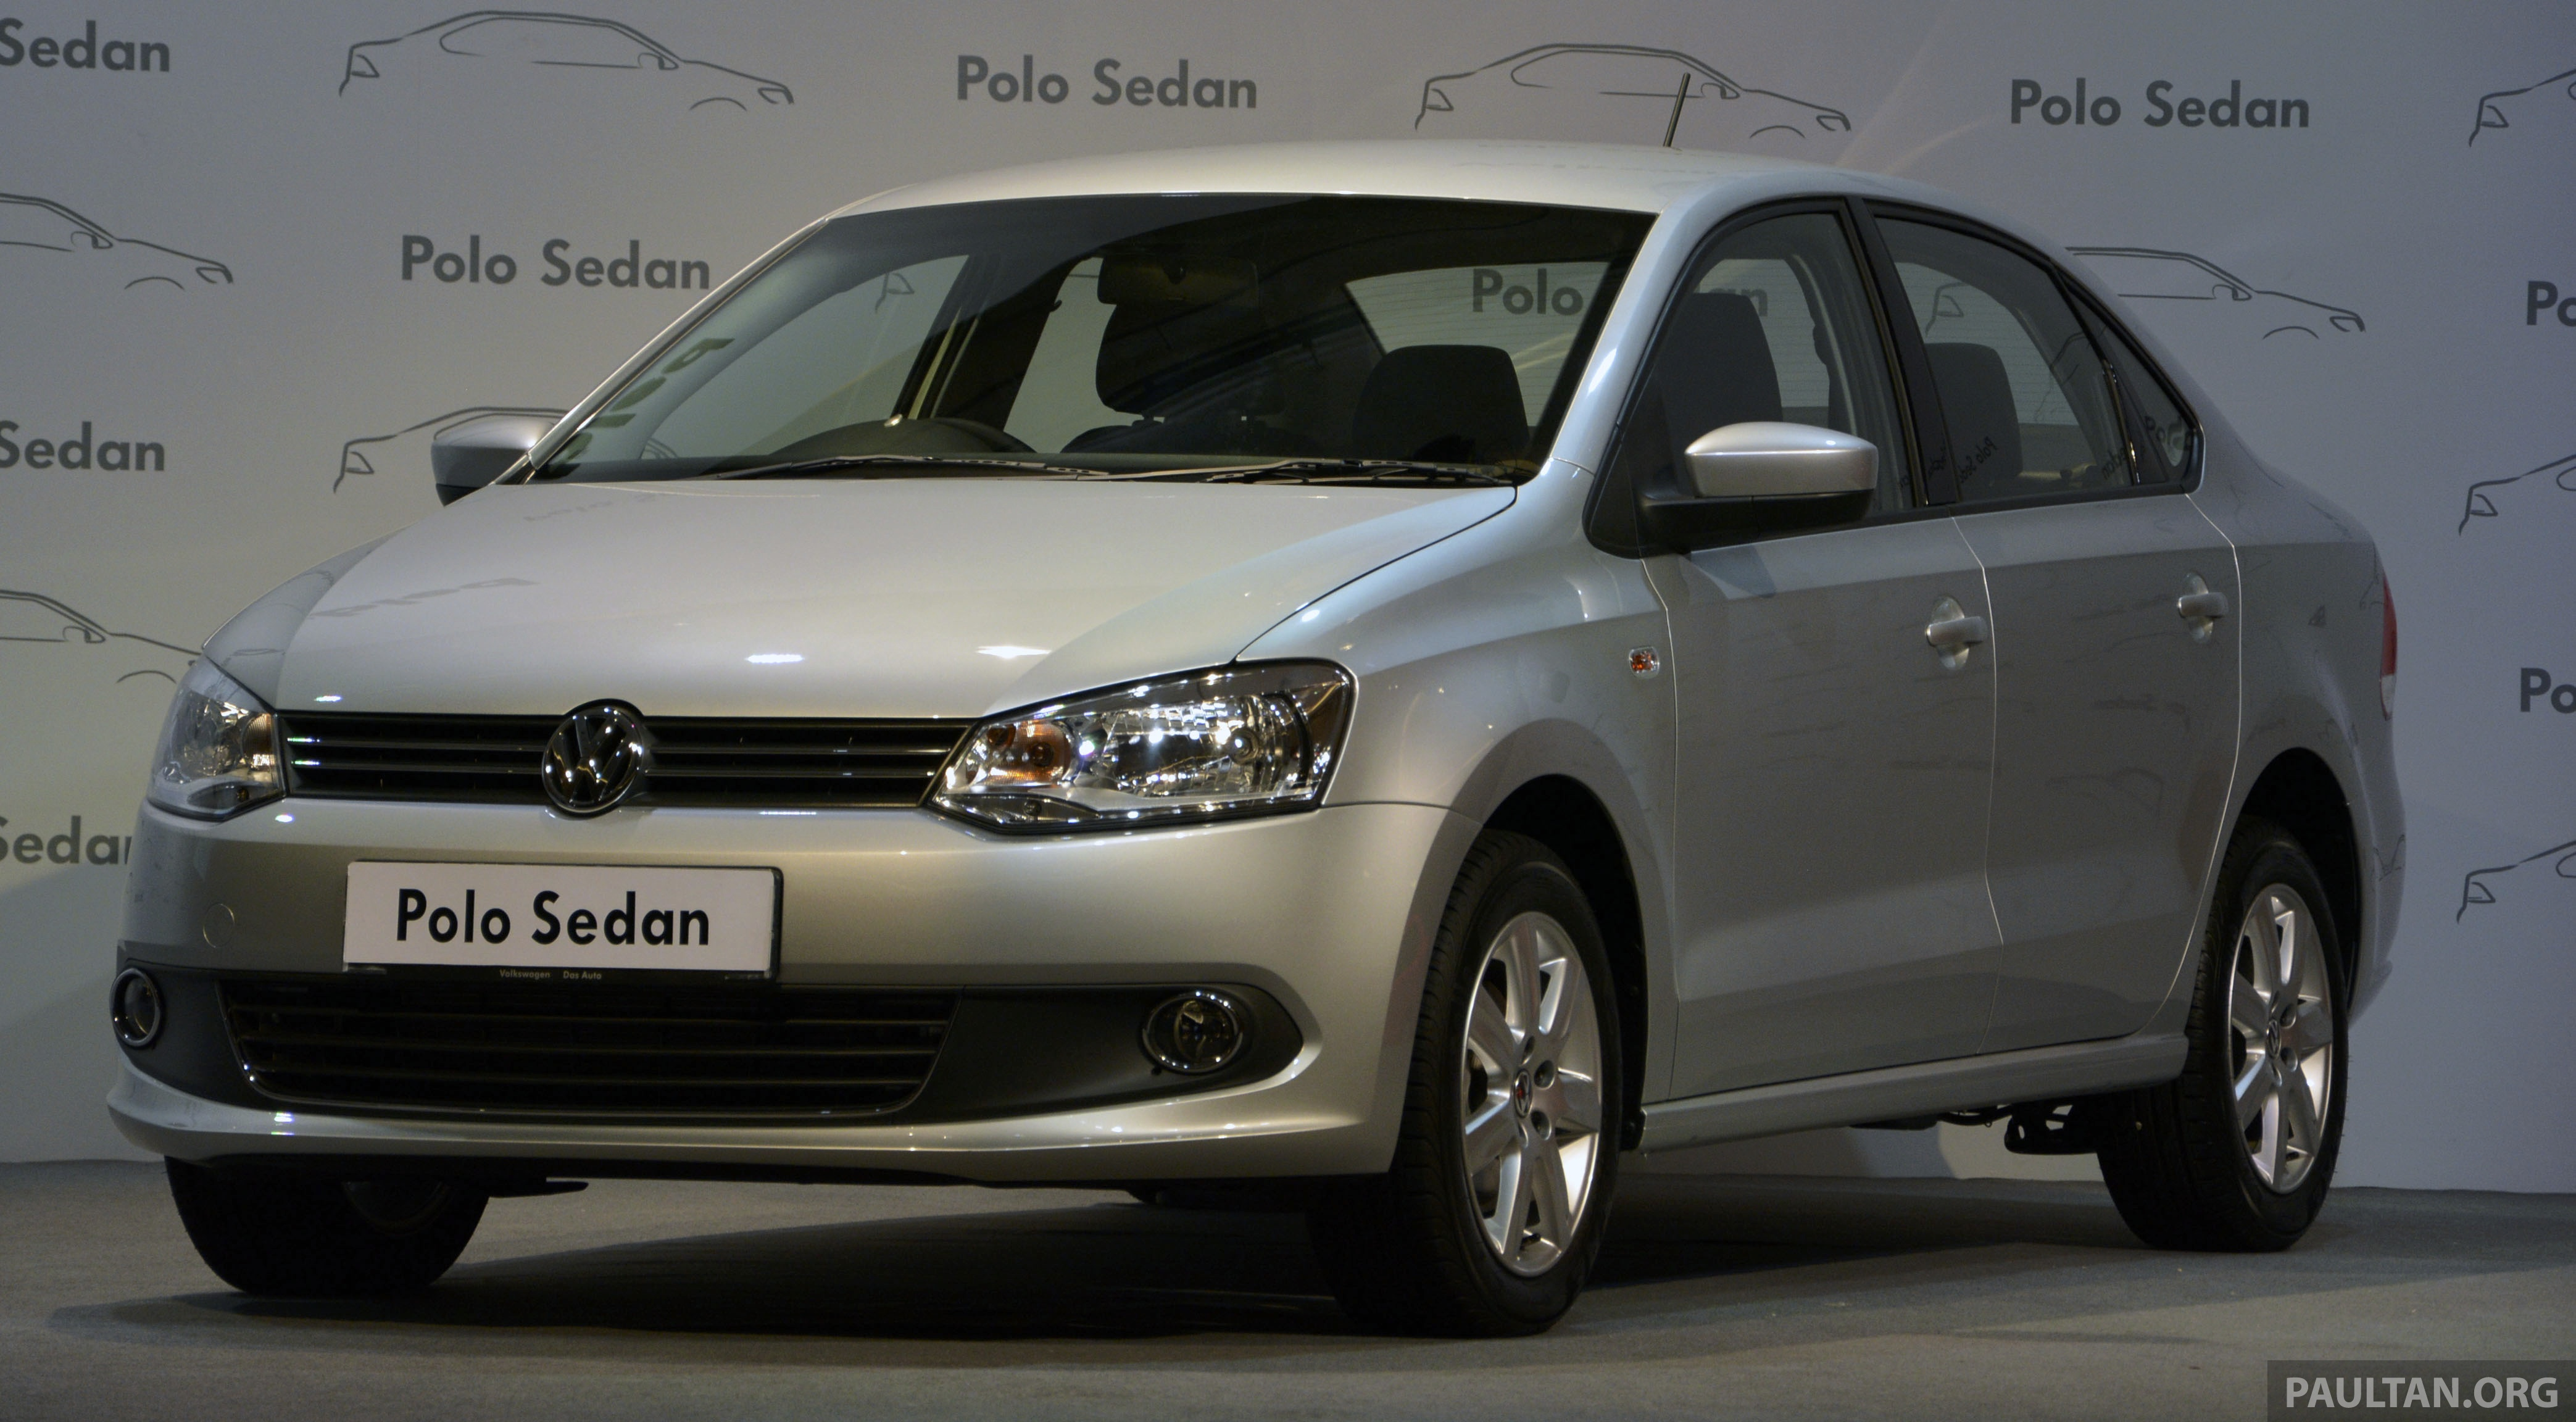 2014 Volkswagen Polo Sedan Ckd Launched Rm86k Image 207414